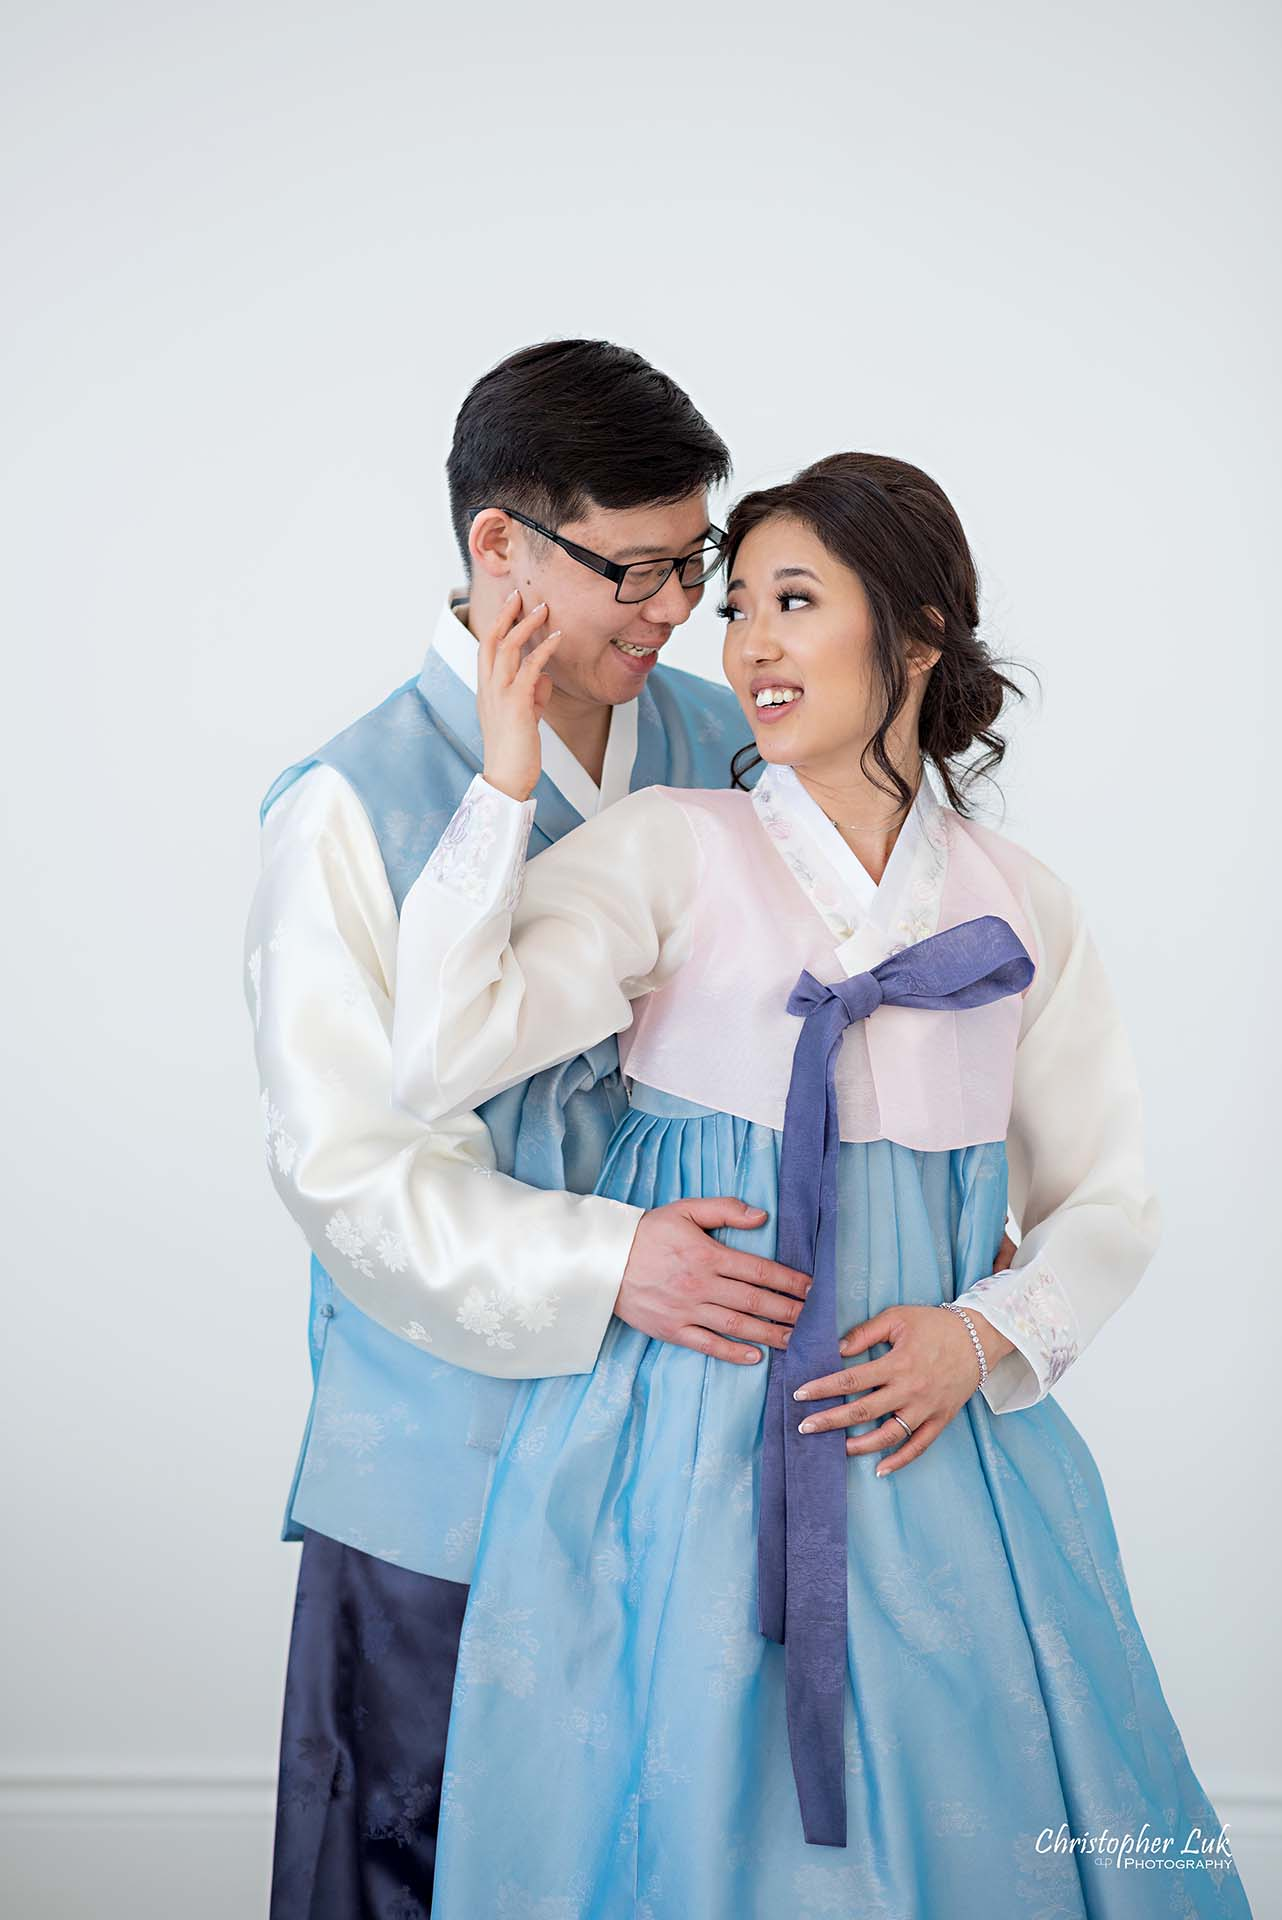 Christopher Luk Toronto Wedding Photographer - Mint Room Studios Bride Groom Natural Candid Photojournalistic Conservatory Ballroom Korean Drama Hanbok Hold Hug Each Other Smile Look Close